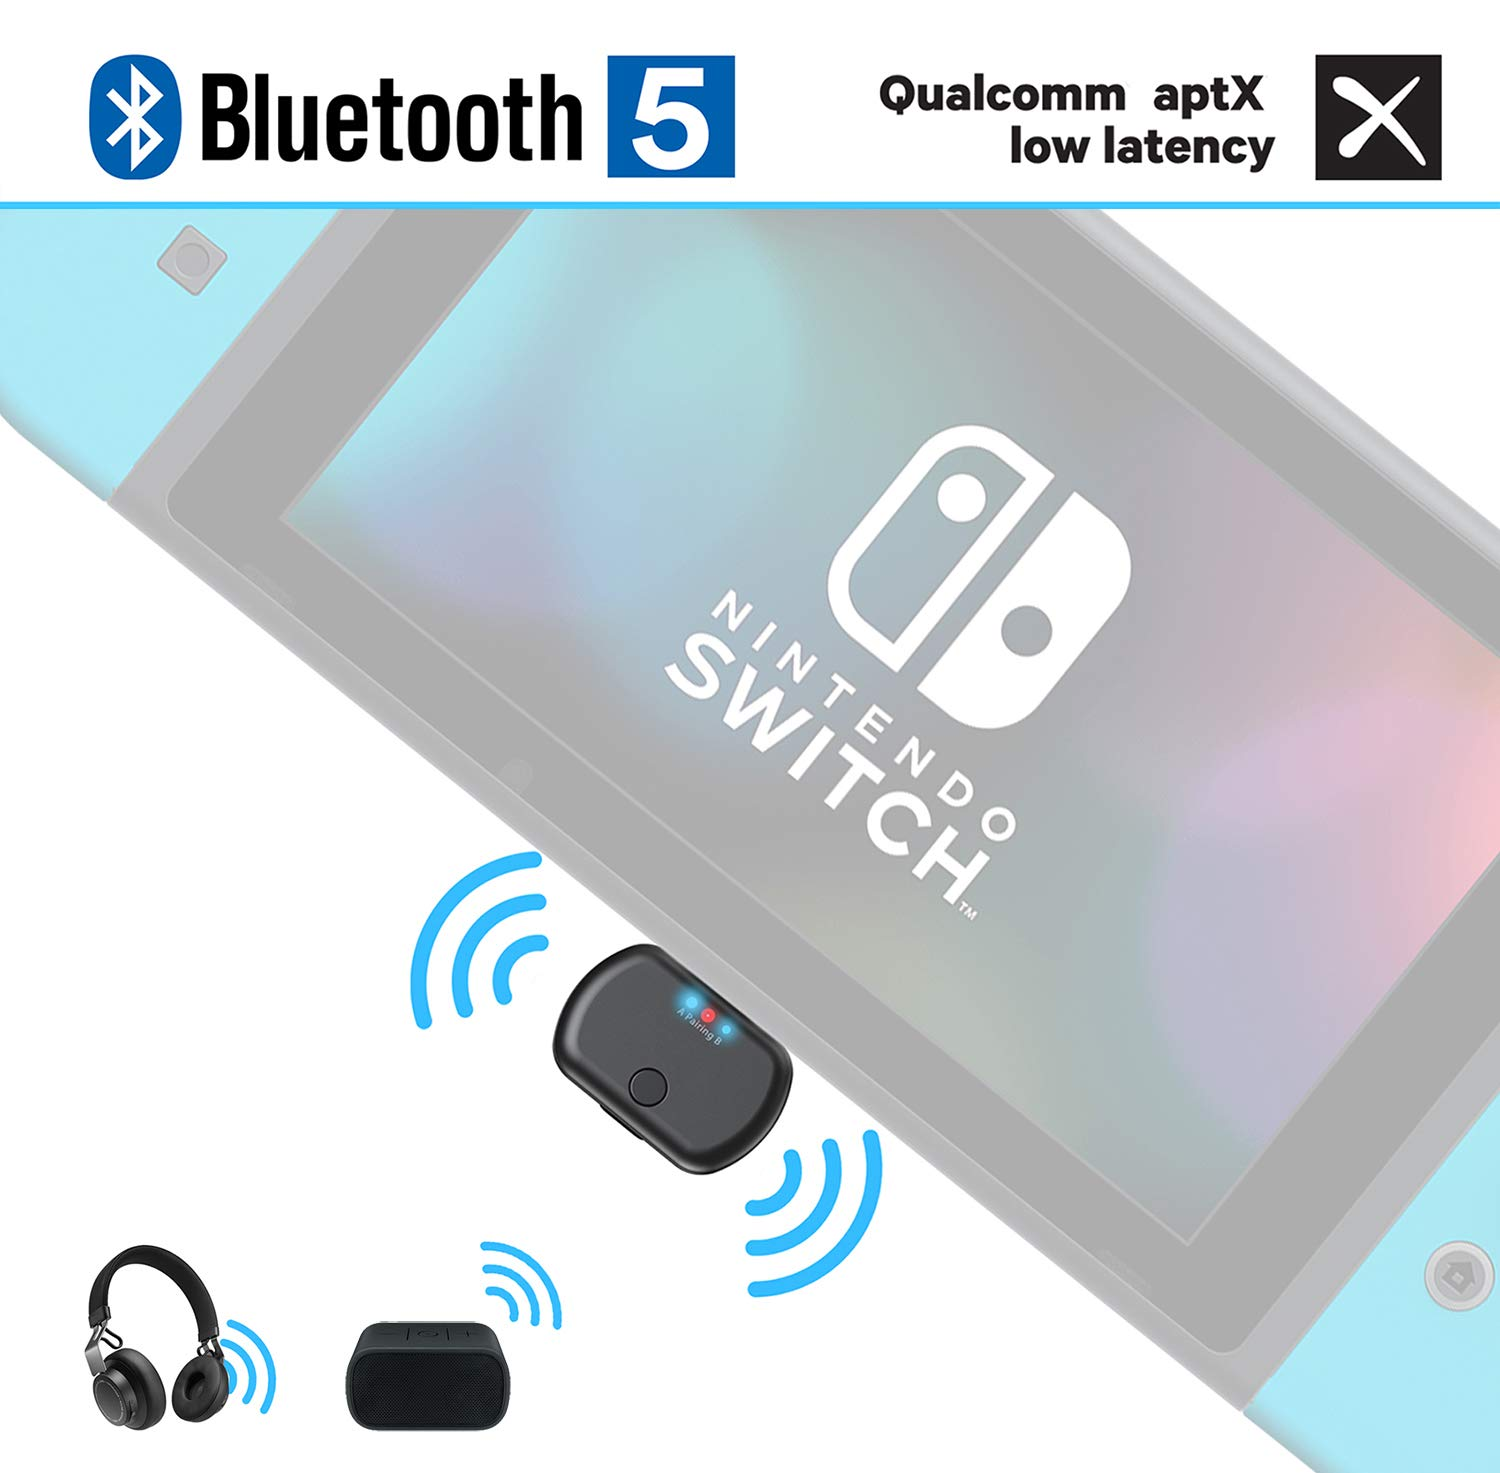 BANIGIPA Bluetooth Transmitter Adapter for Nintendo Switch PS4 PC Laptop, USB Type C Wireless Audio Dongle Adaptor with aptX Low Latency, in-Game Voice Chat, Plug and Play, Dual Link to Headphones by BANIGIPA